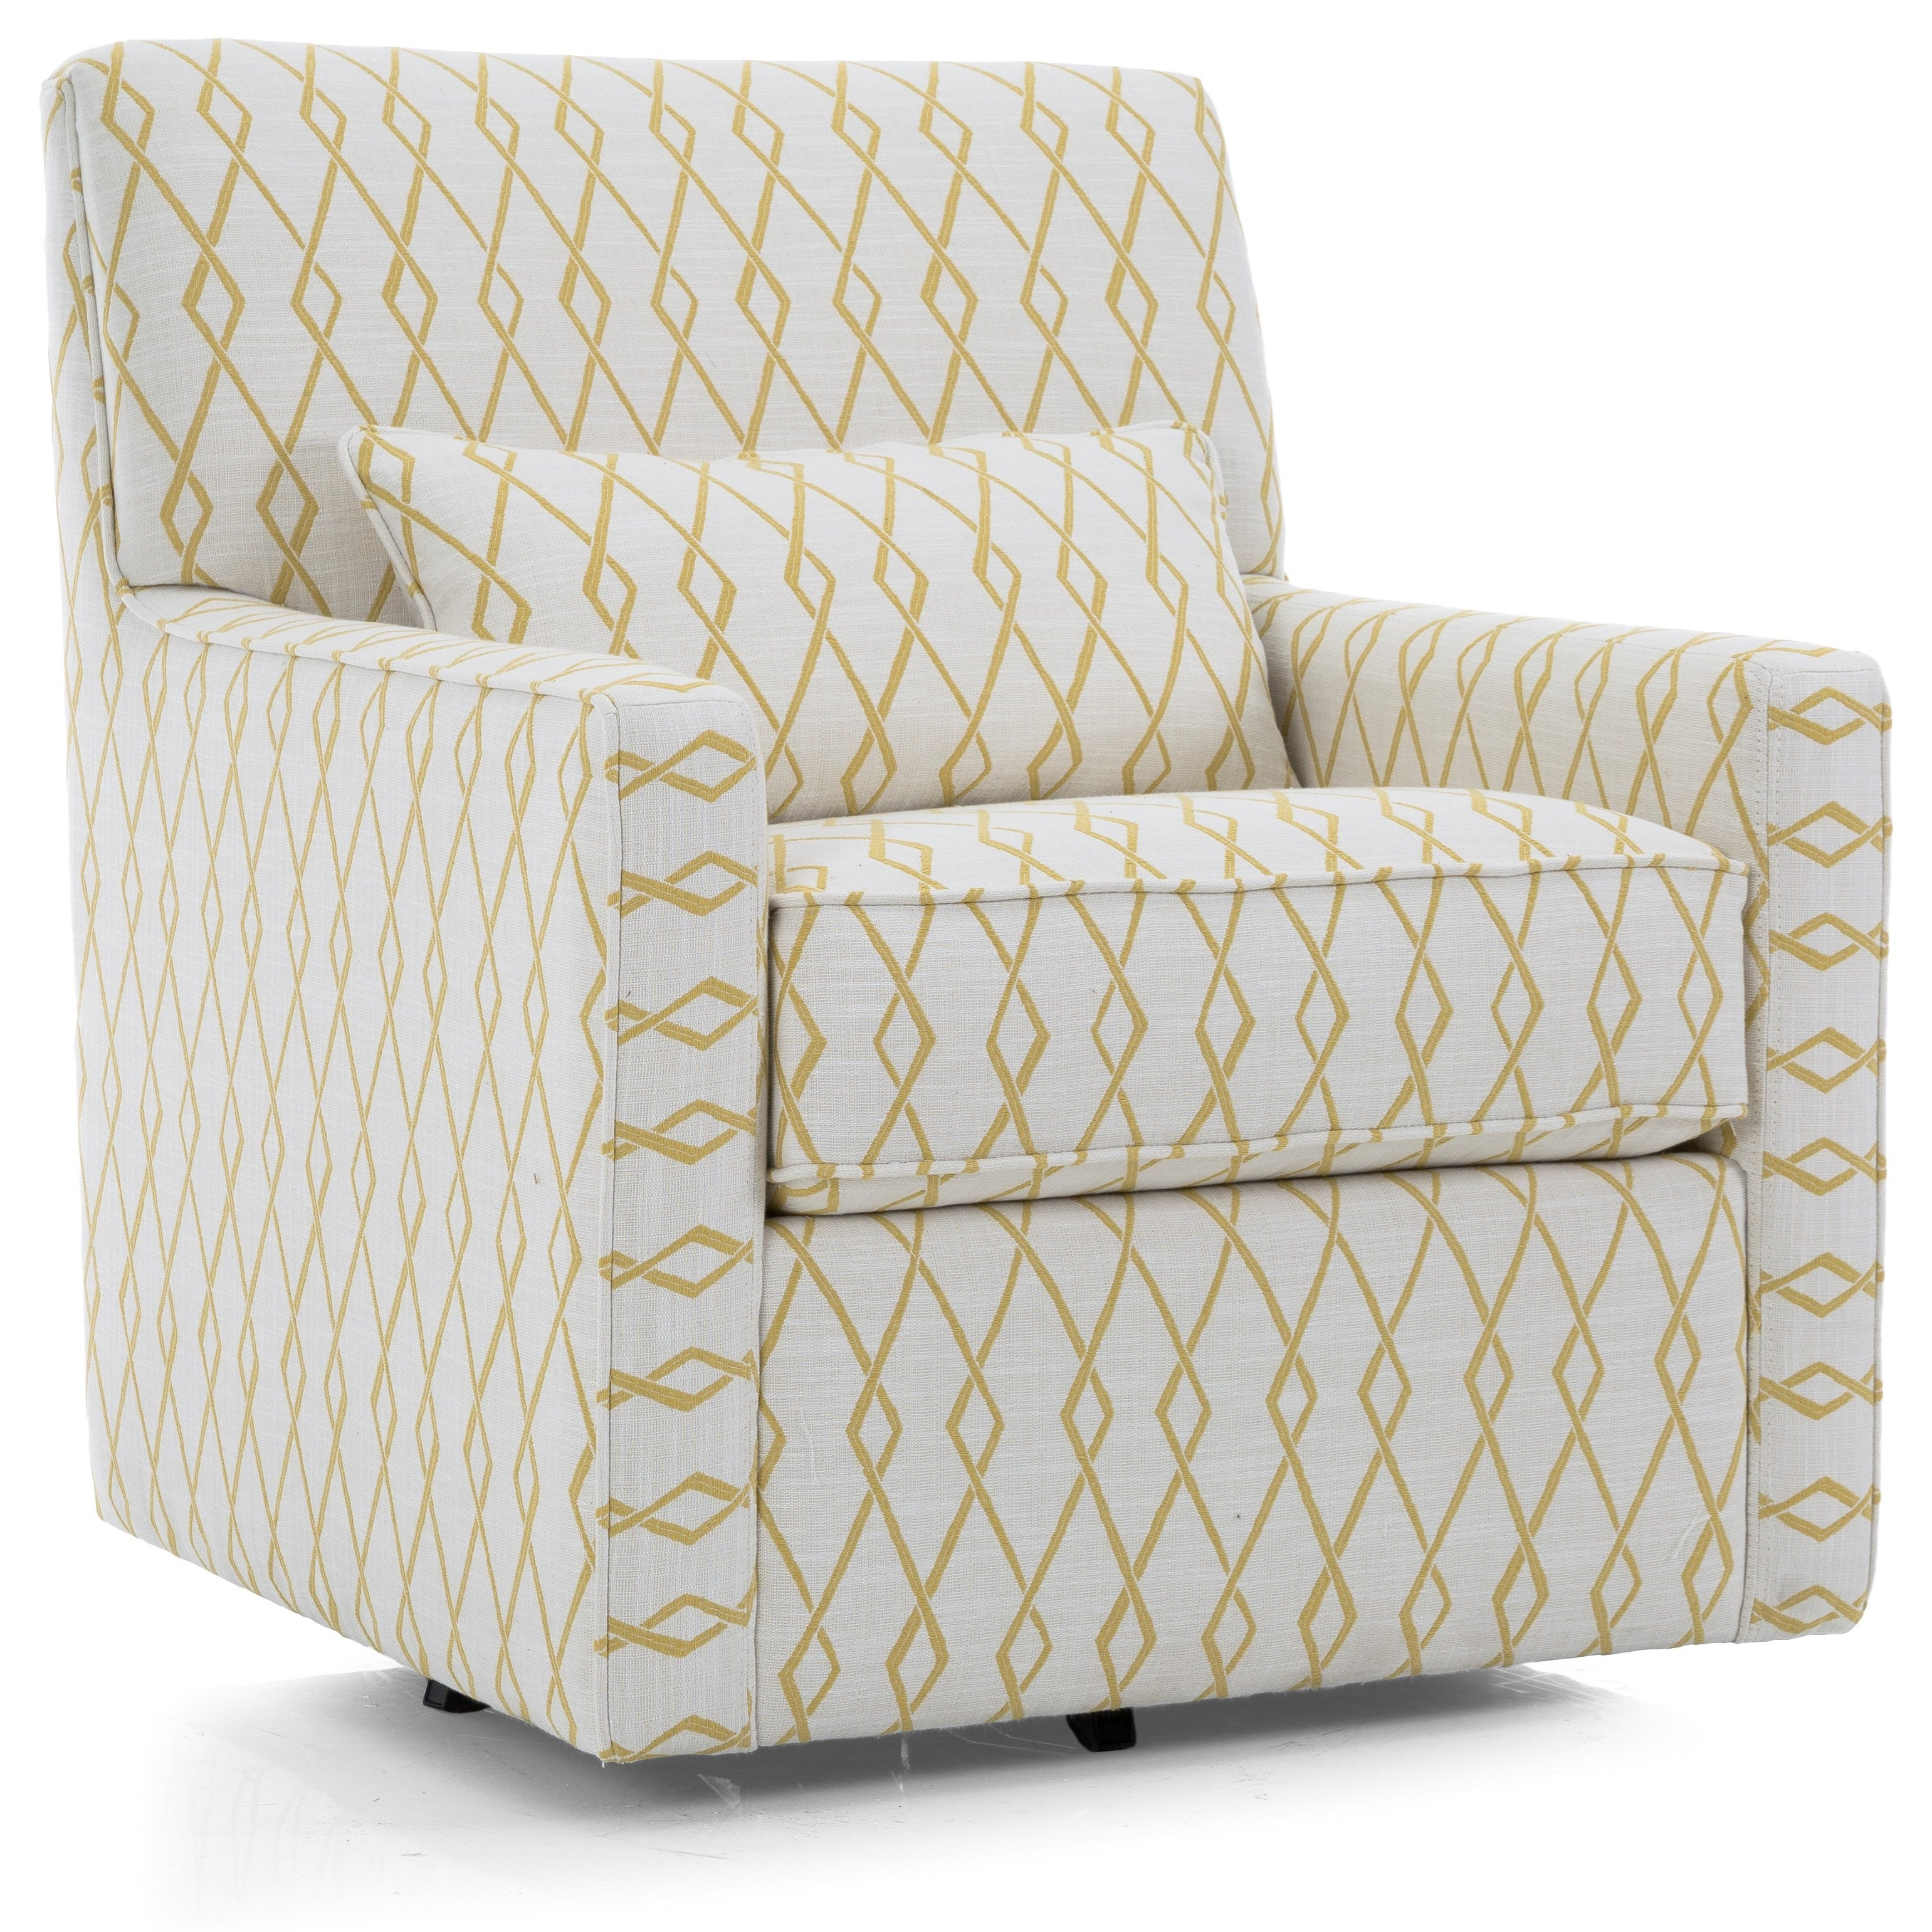 Kingston Swivel Chair by Decor-Rest at Stoney Creek Furniture